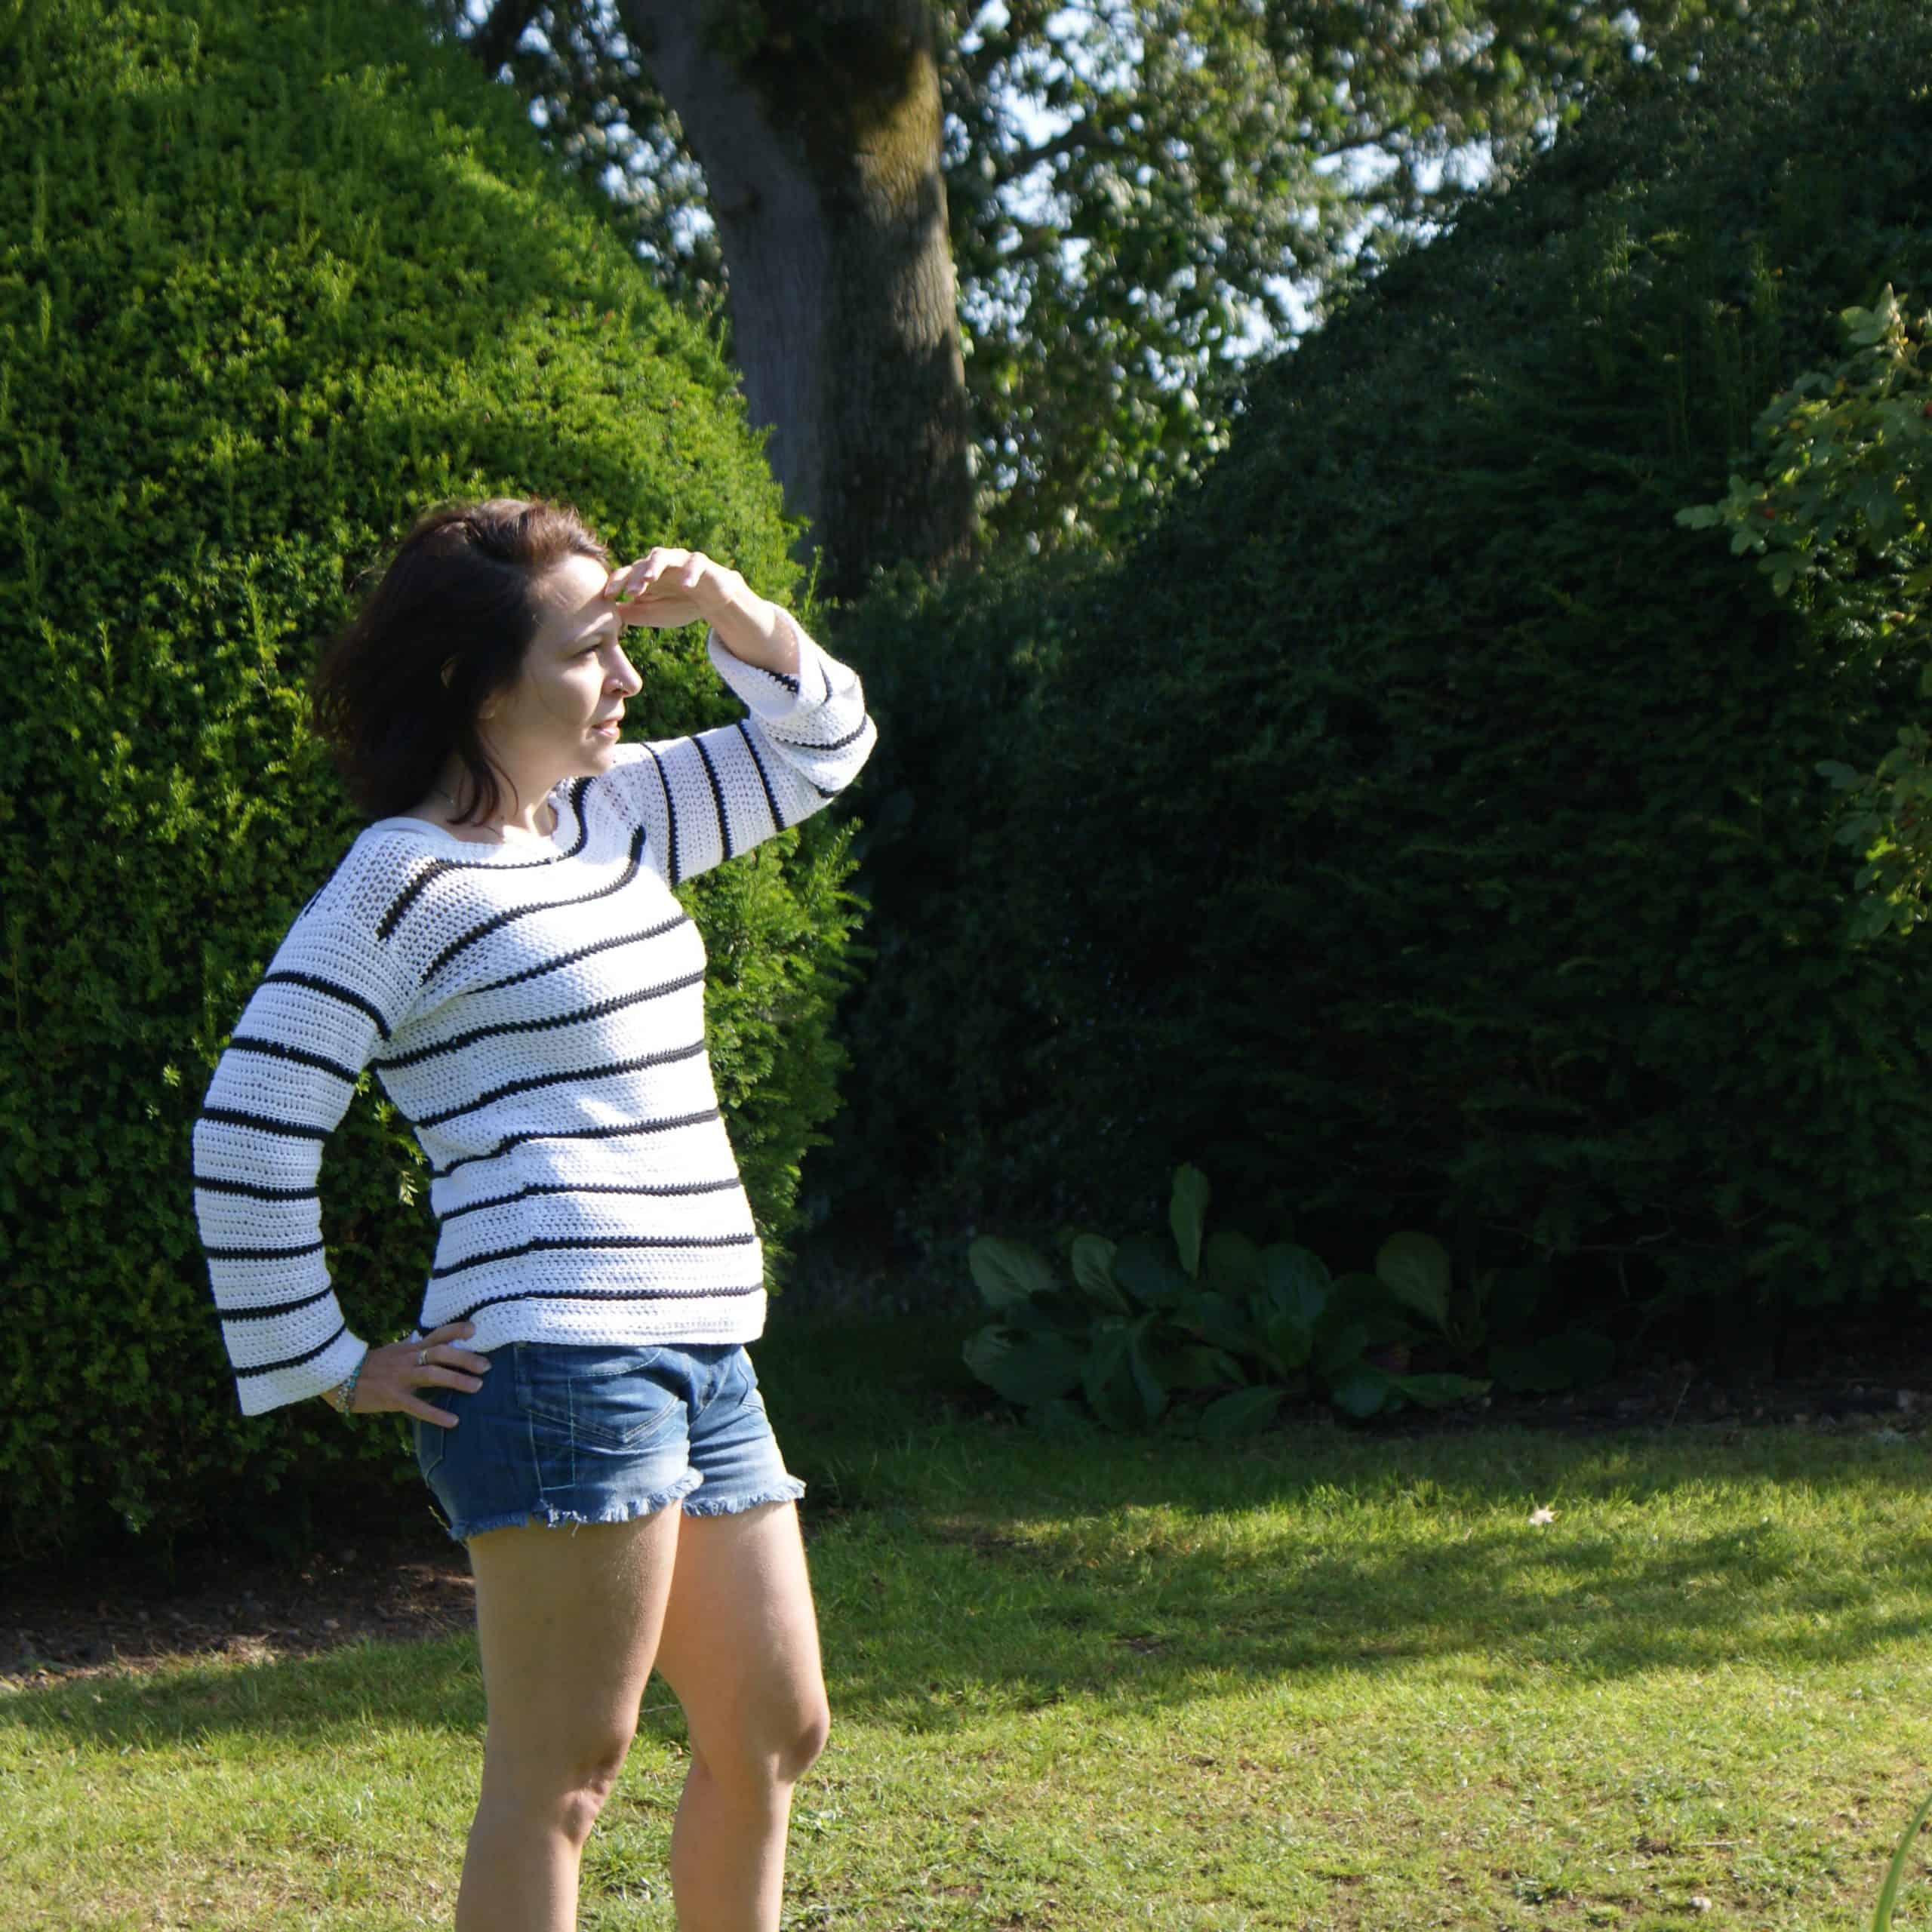 Woman in black and white striped crochet top stands in a garden shielding her eyes from the sin